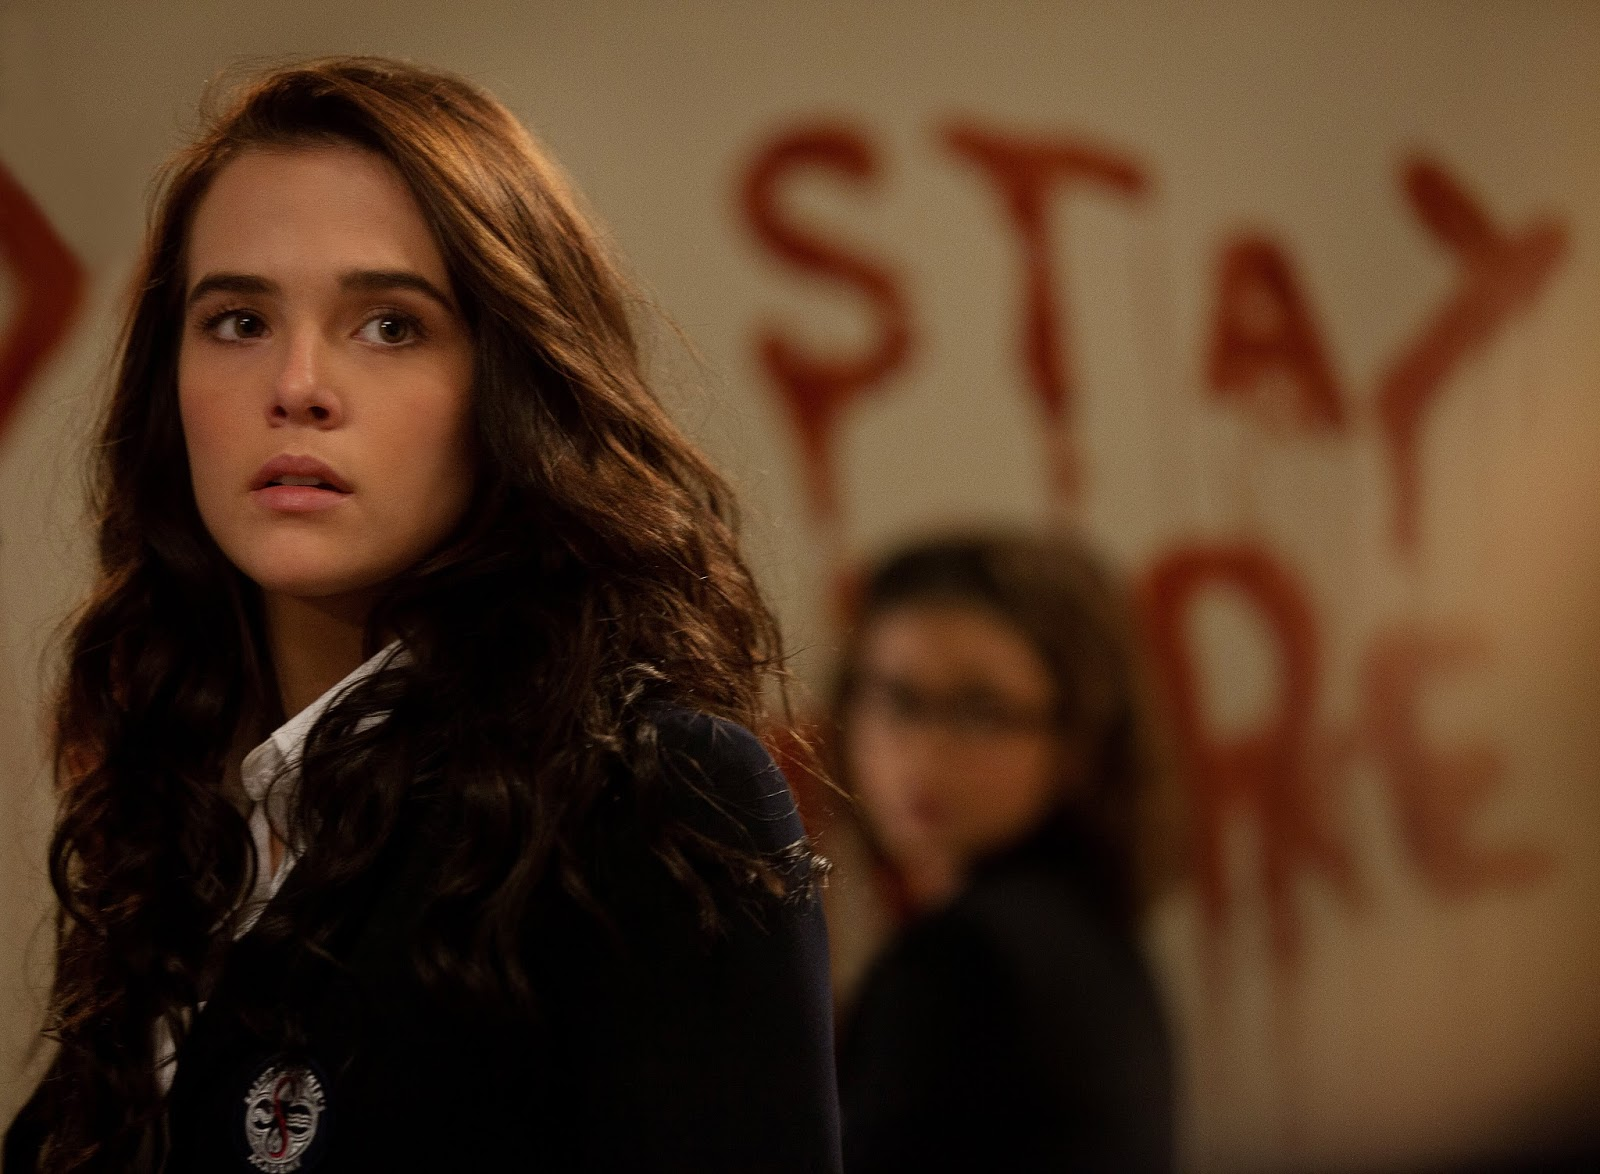 zoey deutch in vampire academy wallpapers - Zoey Deutch In Vampire Academy Hd Wallpapers